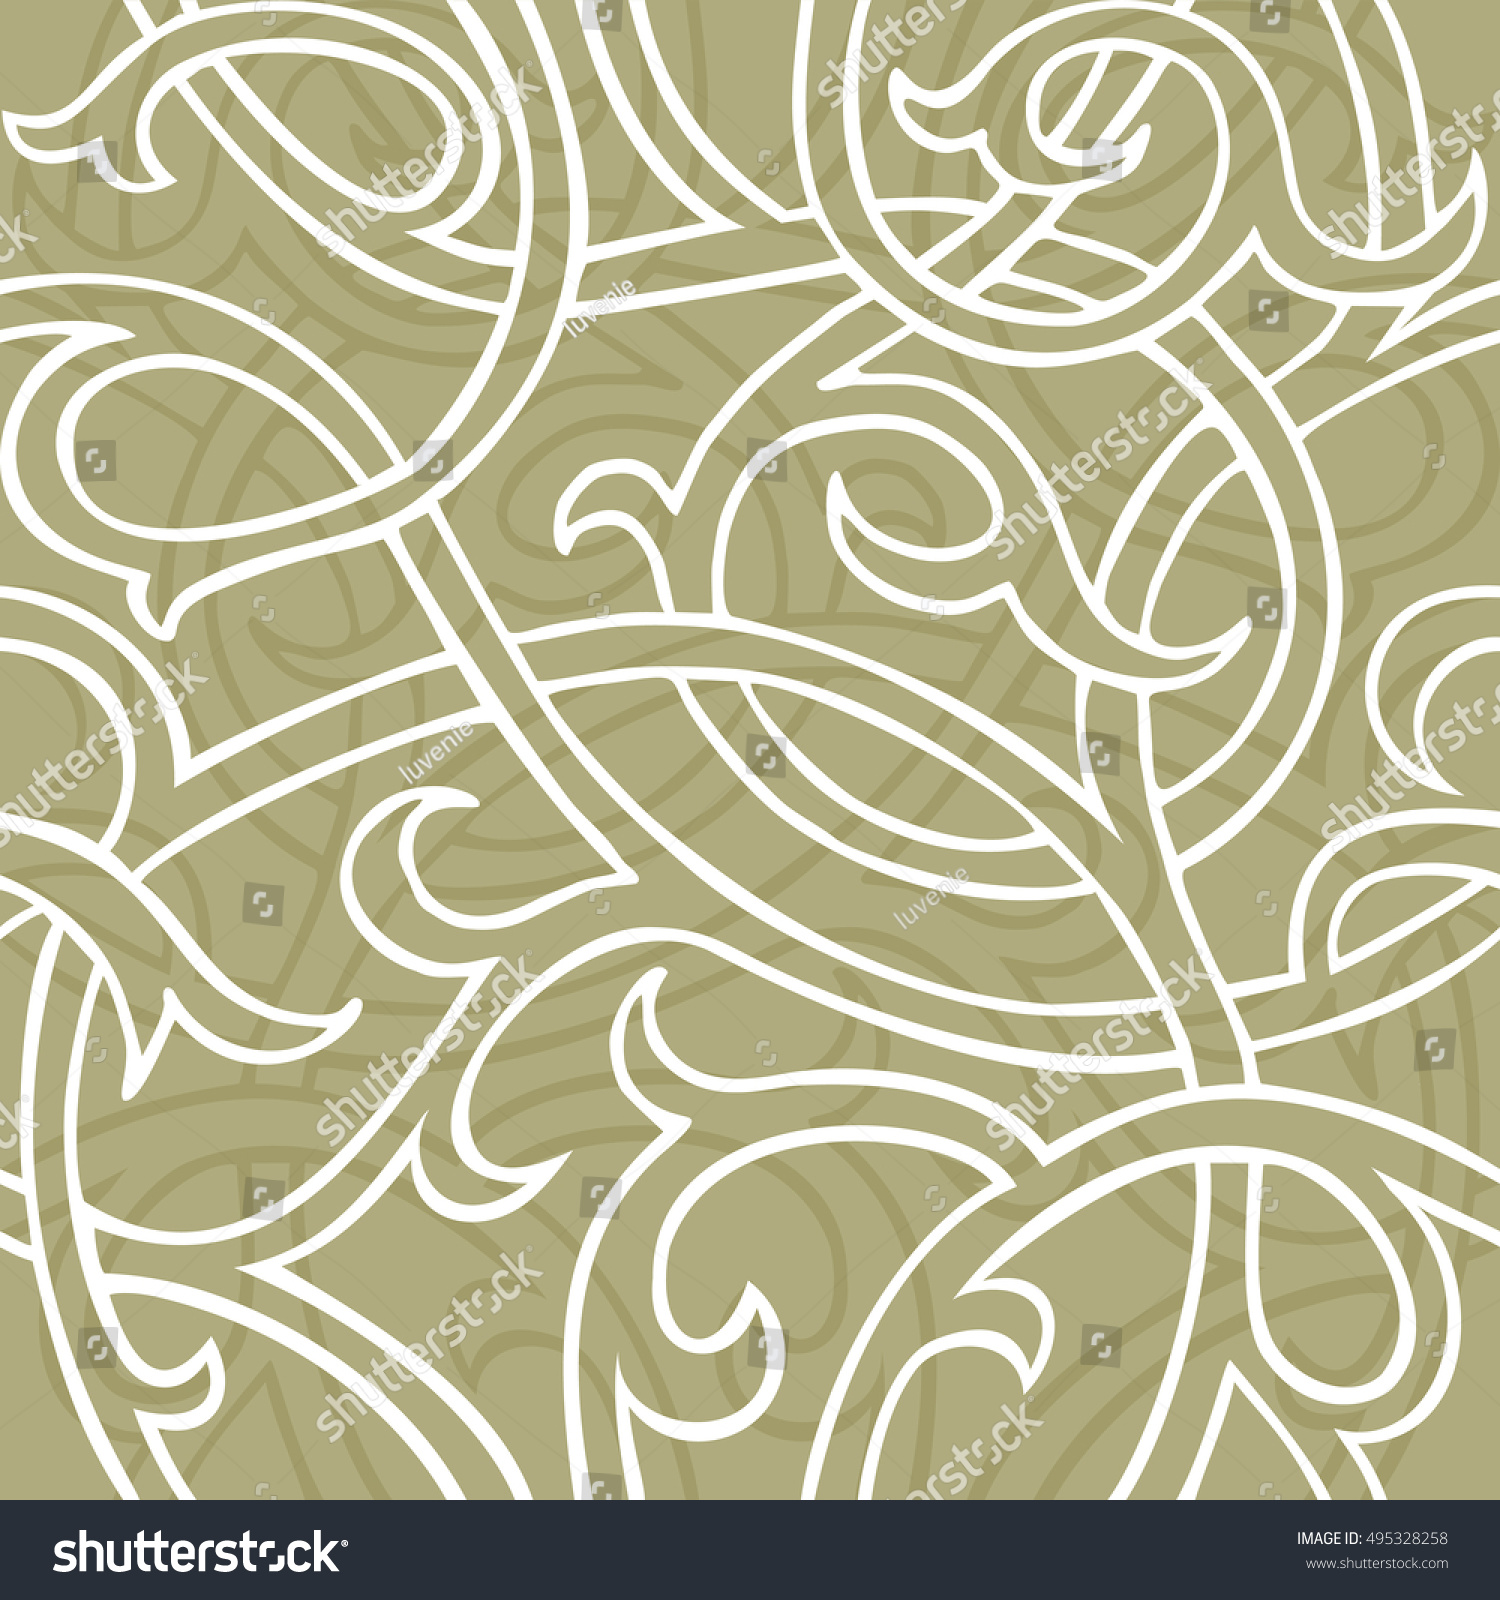 Medieval Seamless Floral Vector Wallpaper Pattern Stock Vector Royalty Free 495328258